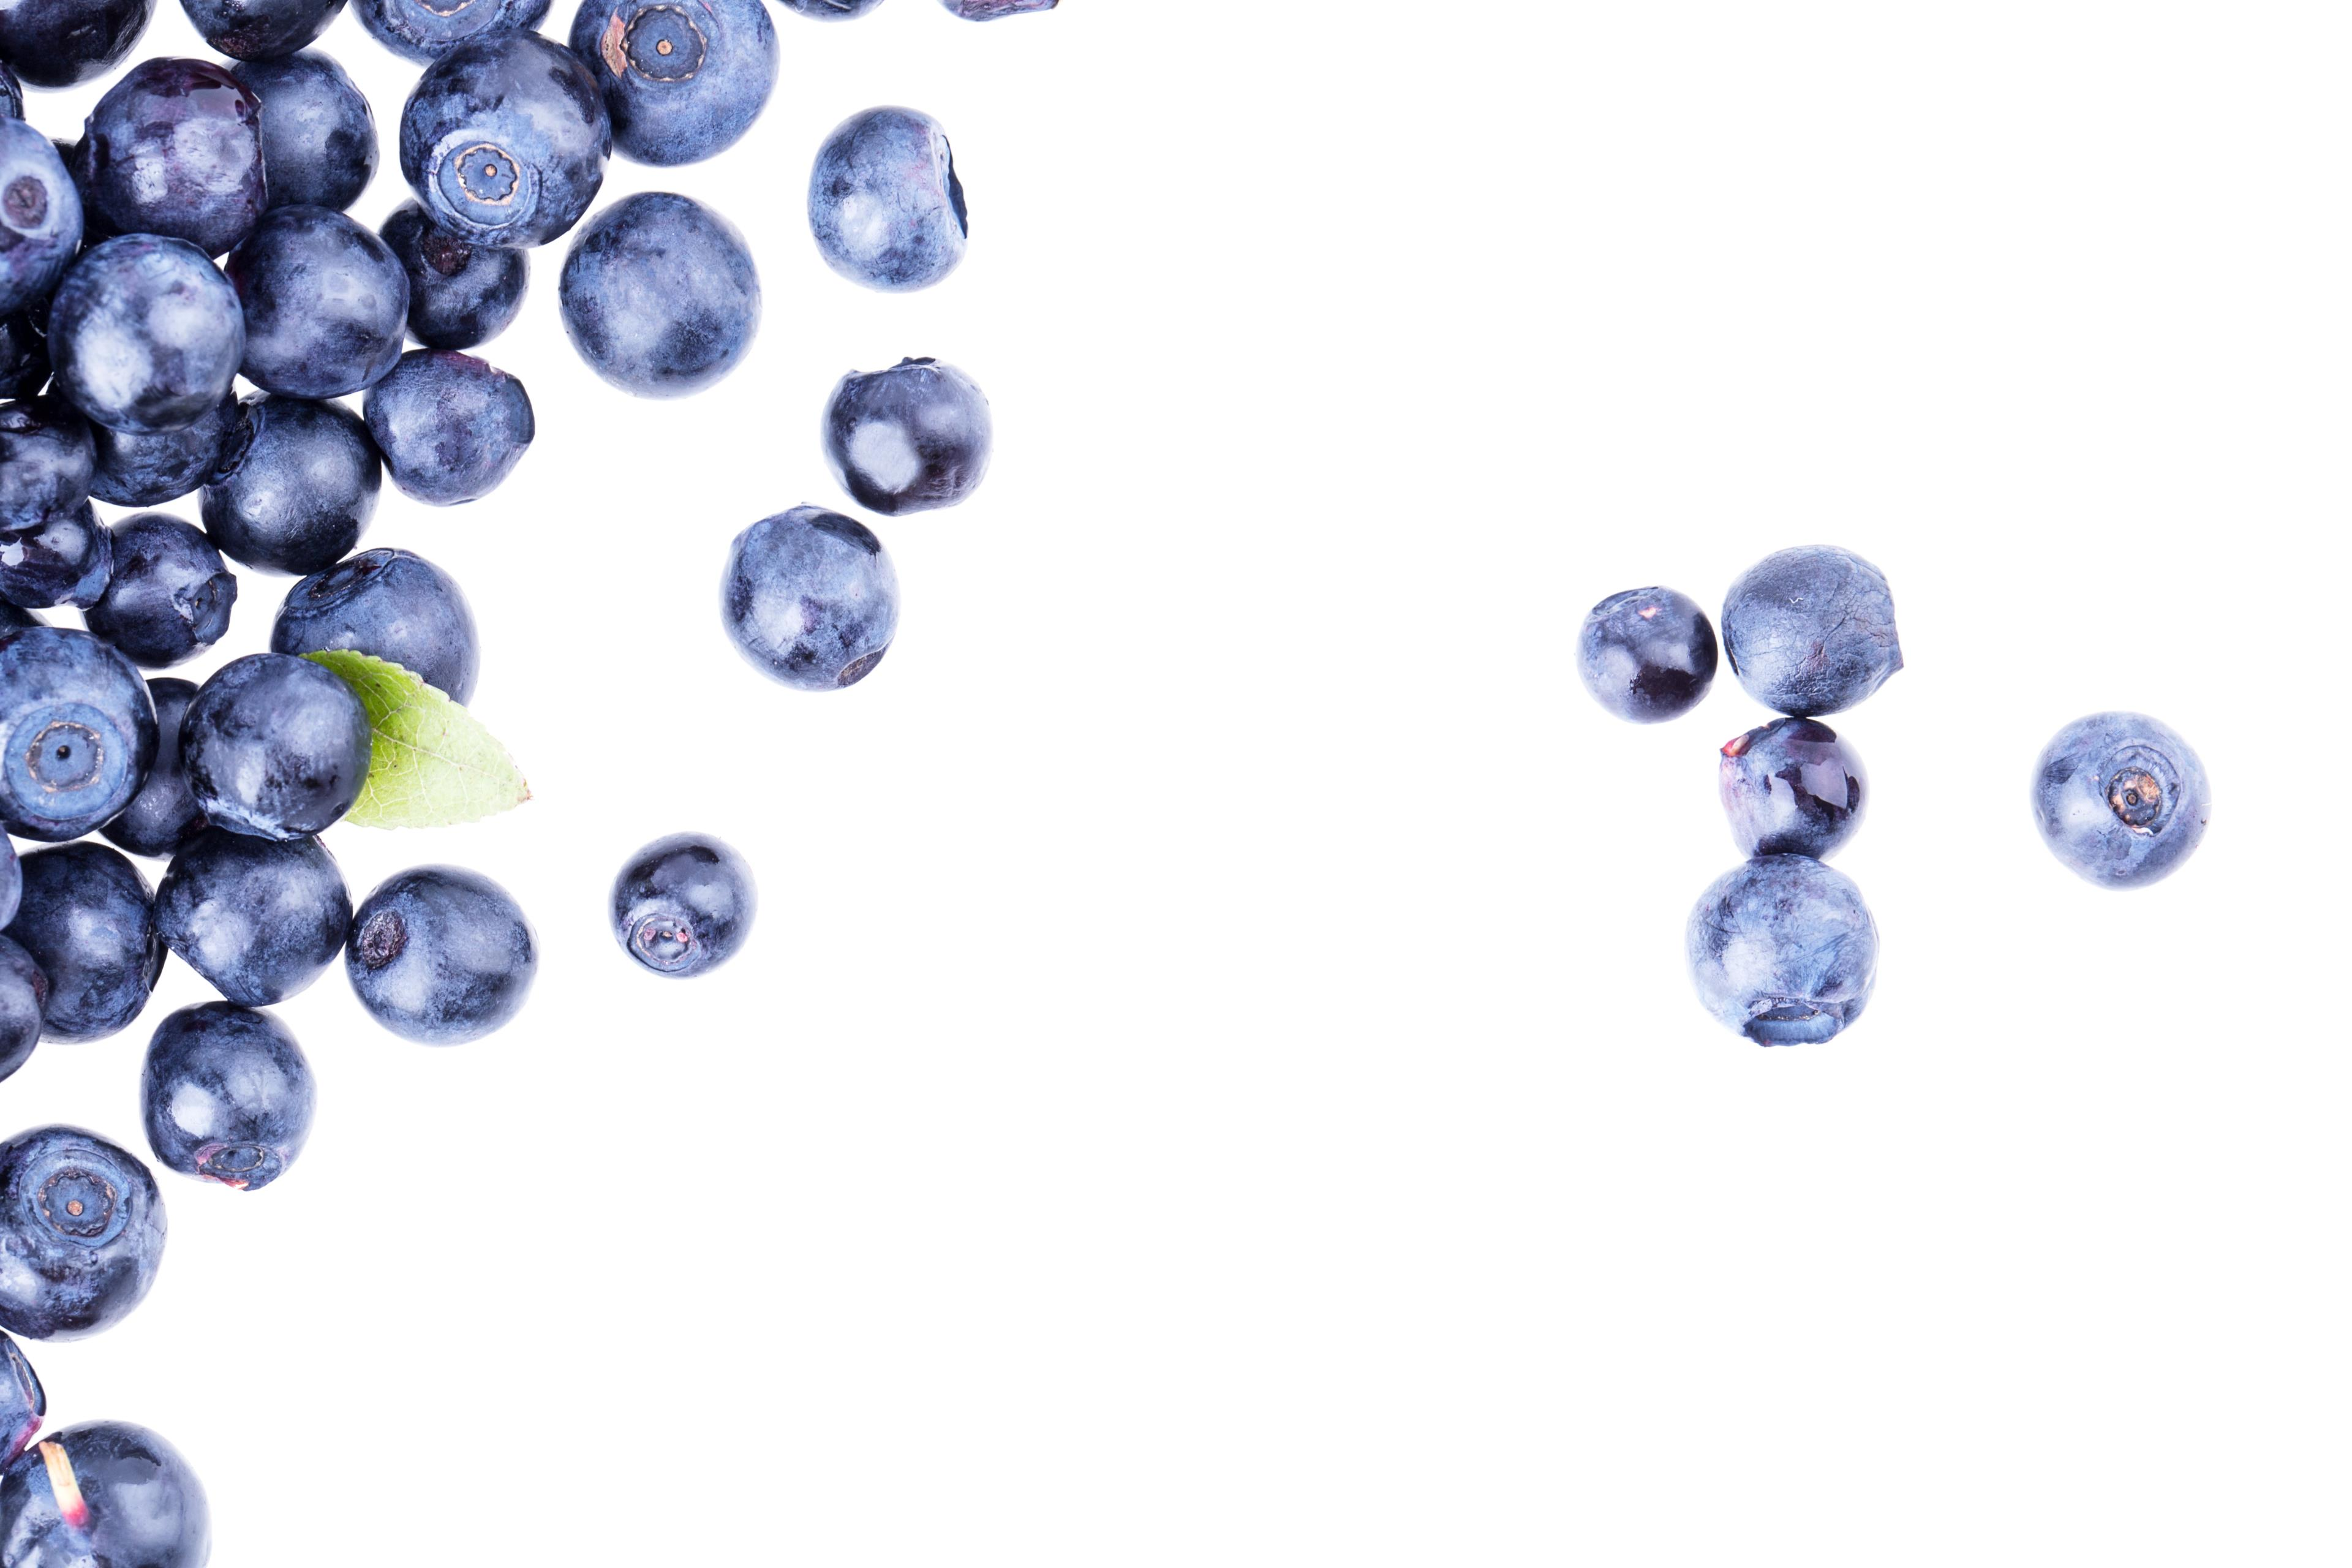 Blueberries against a plain, white background